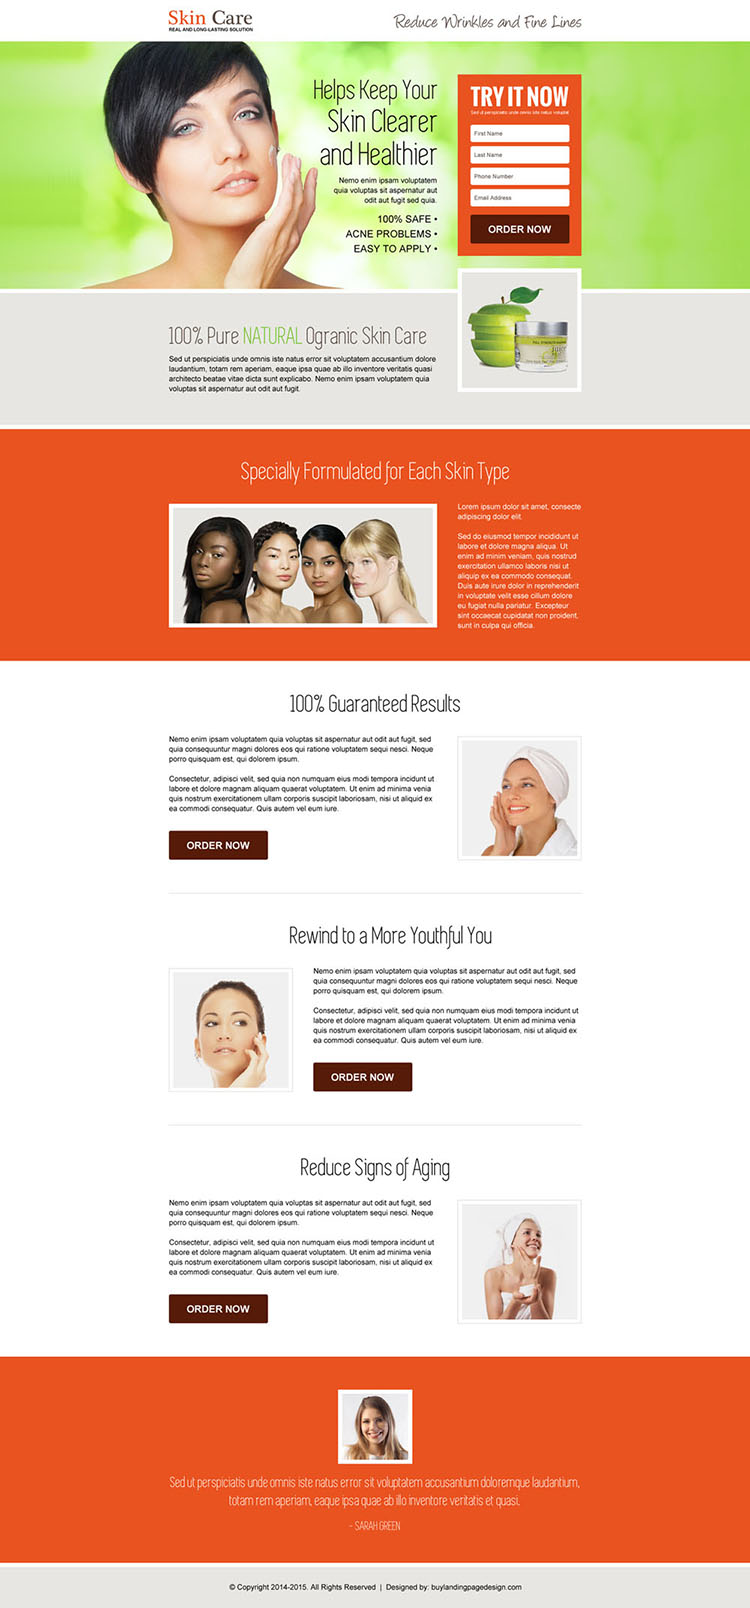 Youthful Glowing Skin Care Leads Lp 019 Skin Care